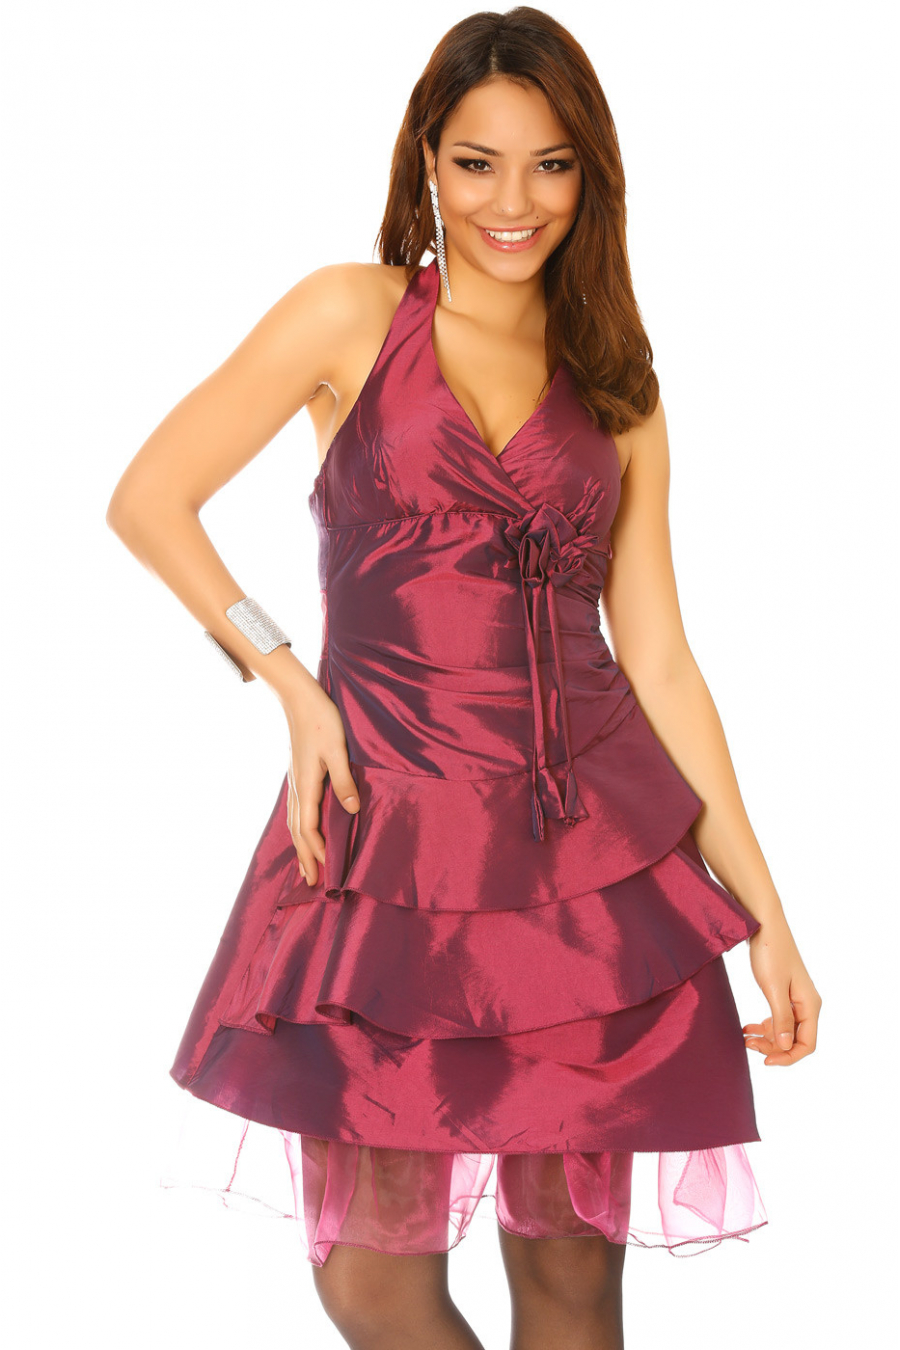 Cocktail dress, elegance in plum colored satin 0081